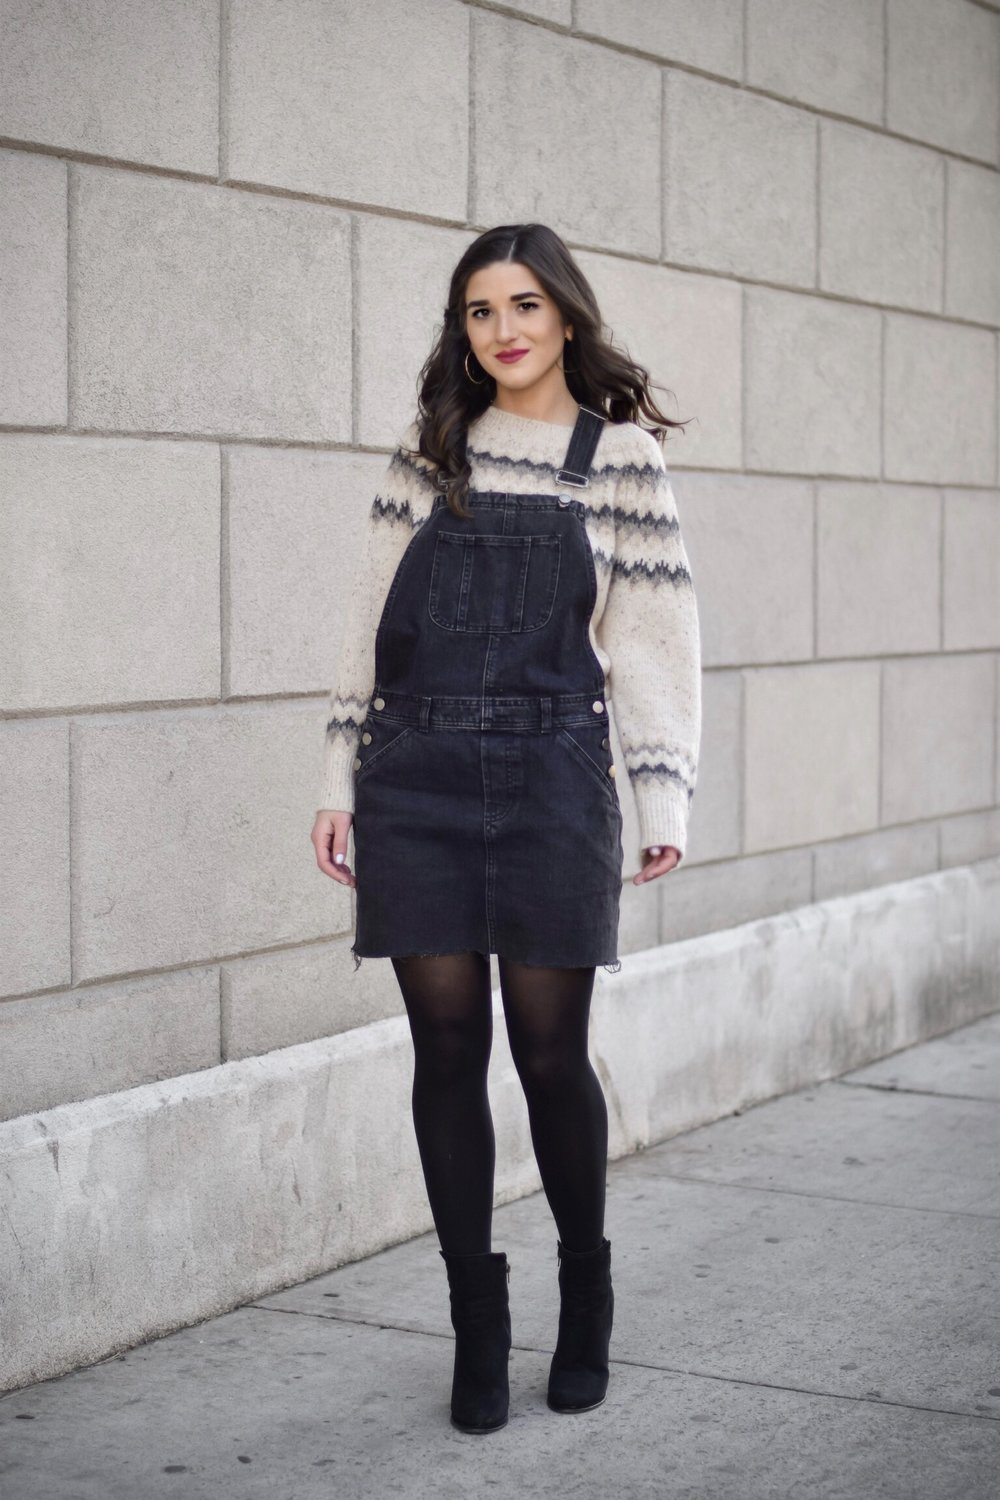 My Biggest Fashion And Beauty Mistakes Jean Overall Dress Over Cashmere Sweater Esther Santer Fashion Blog NYC Street Style Blogger Outfit OOTD Trendy Shopping Tights Cozy Winter What To Wear Cold Wavy Hair Girl Women Heel Booties Bold Lip Vince Denim.jpg